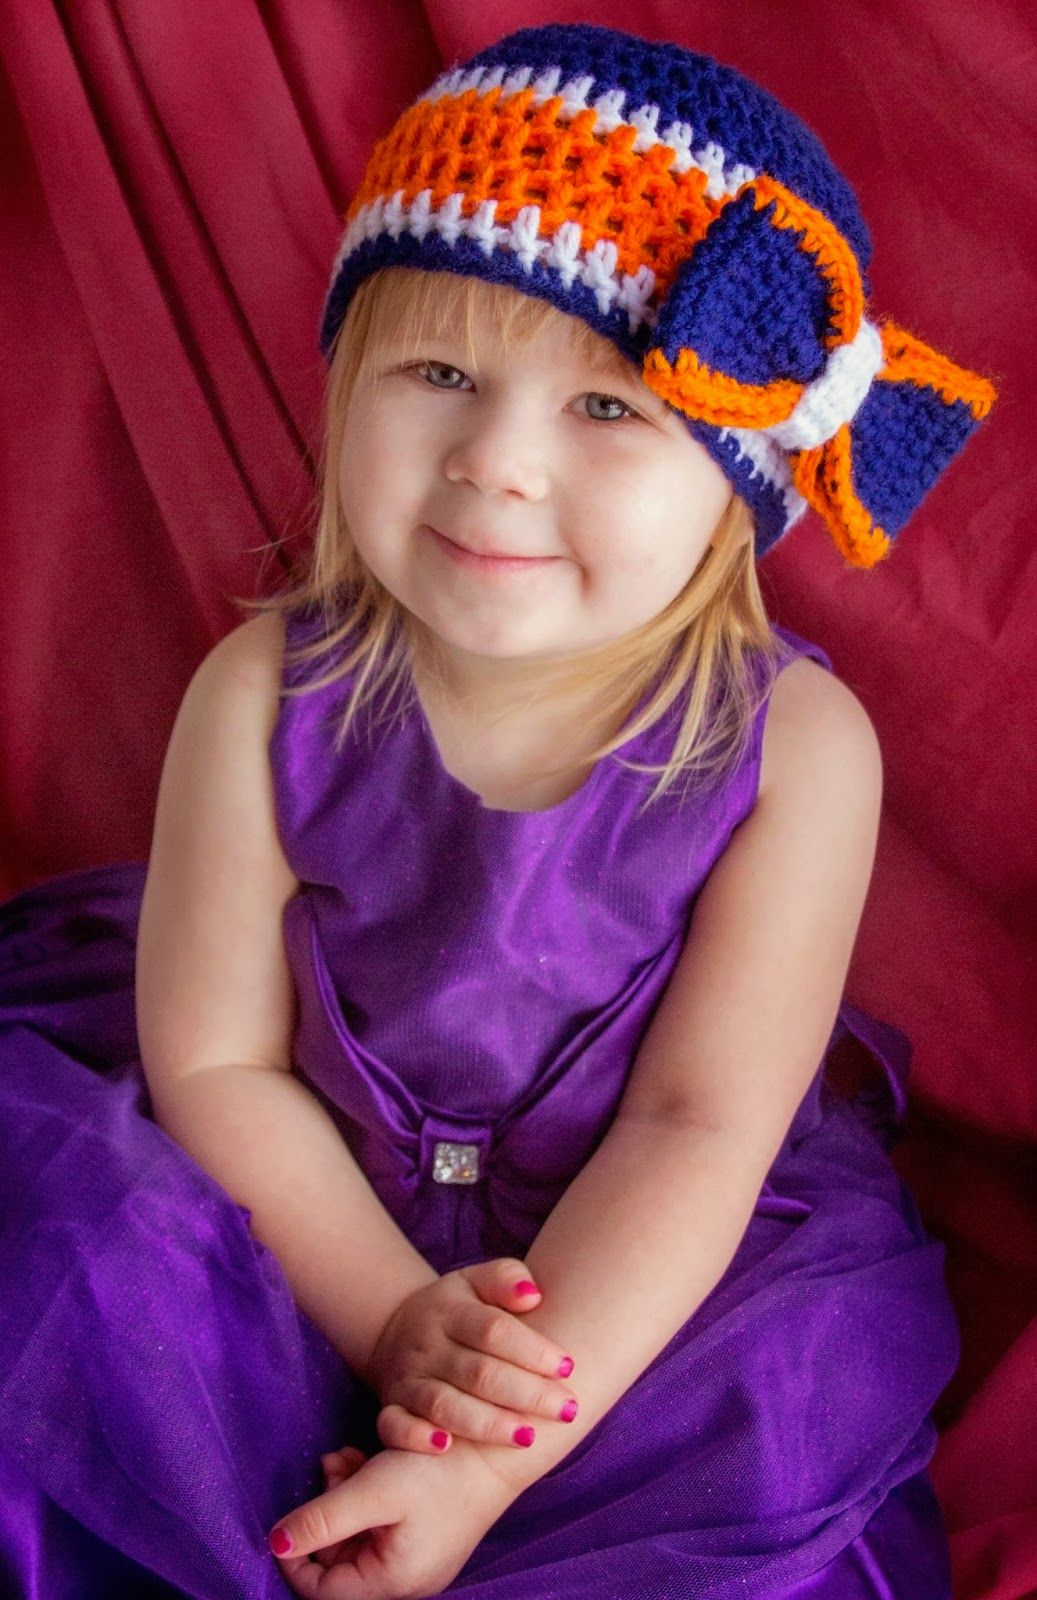 Manda Nicole\'s Crochet Patterns: Broncos Bow Beanie | My hobby is ...